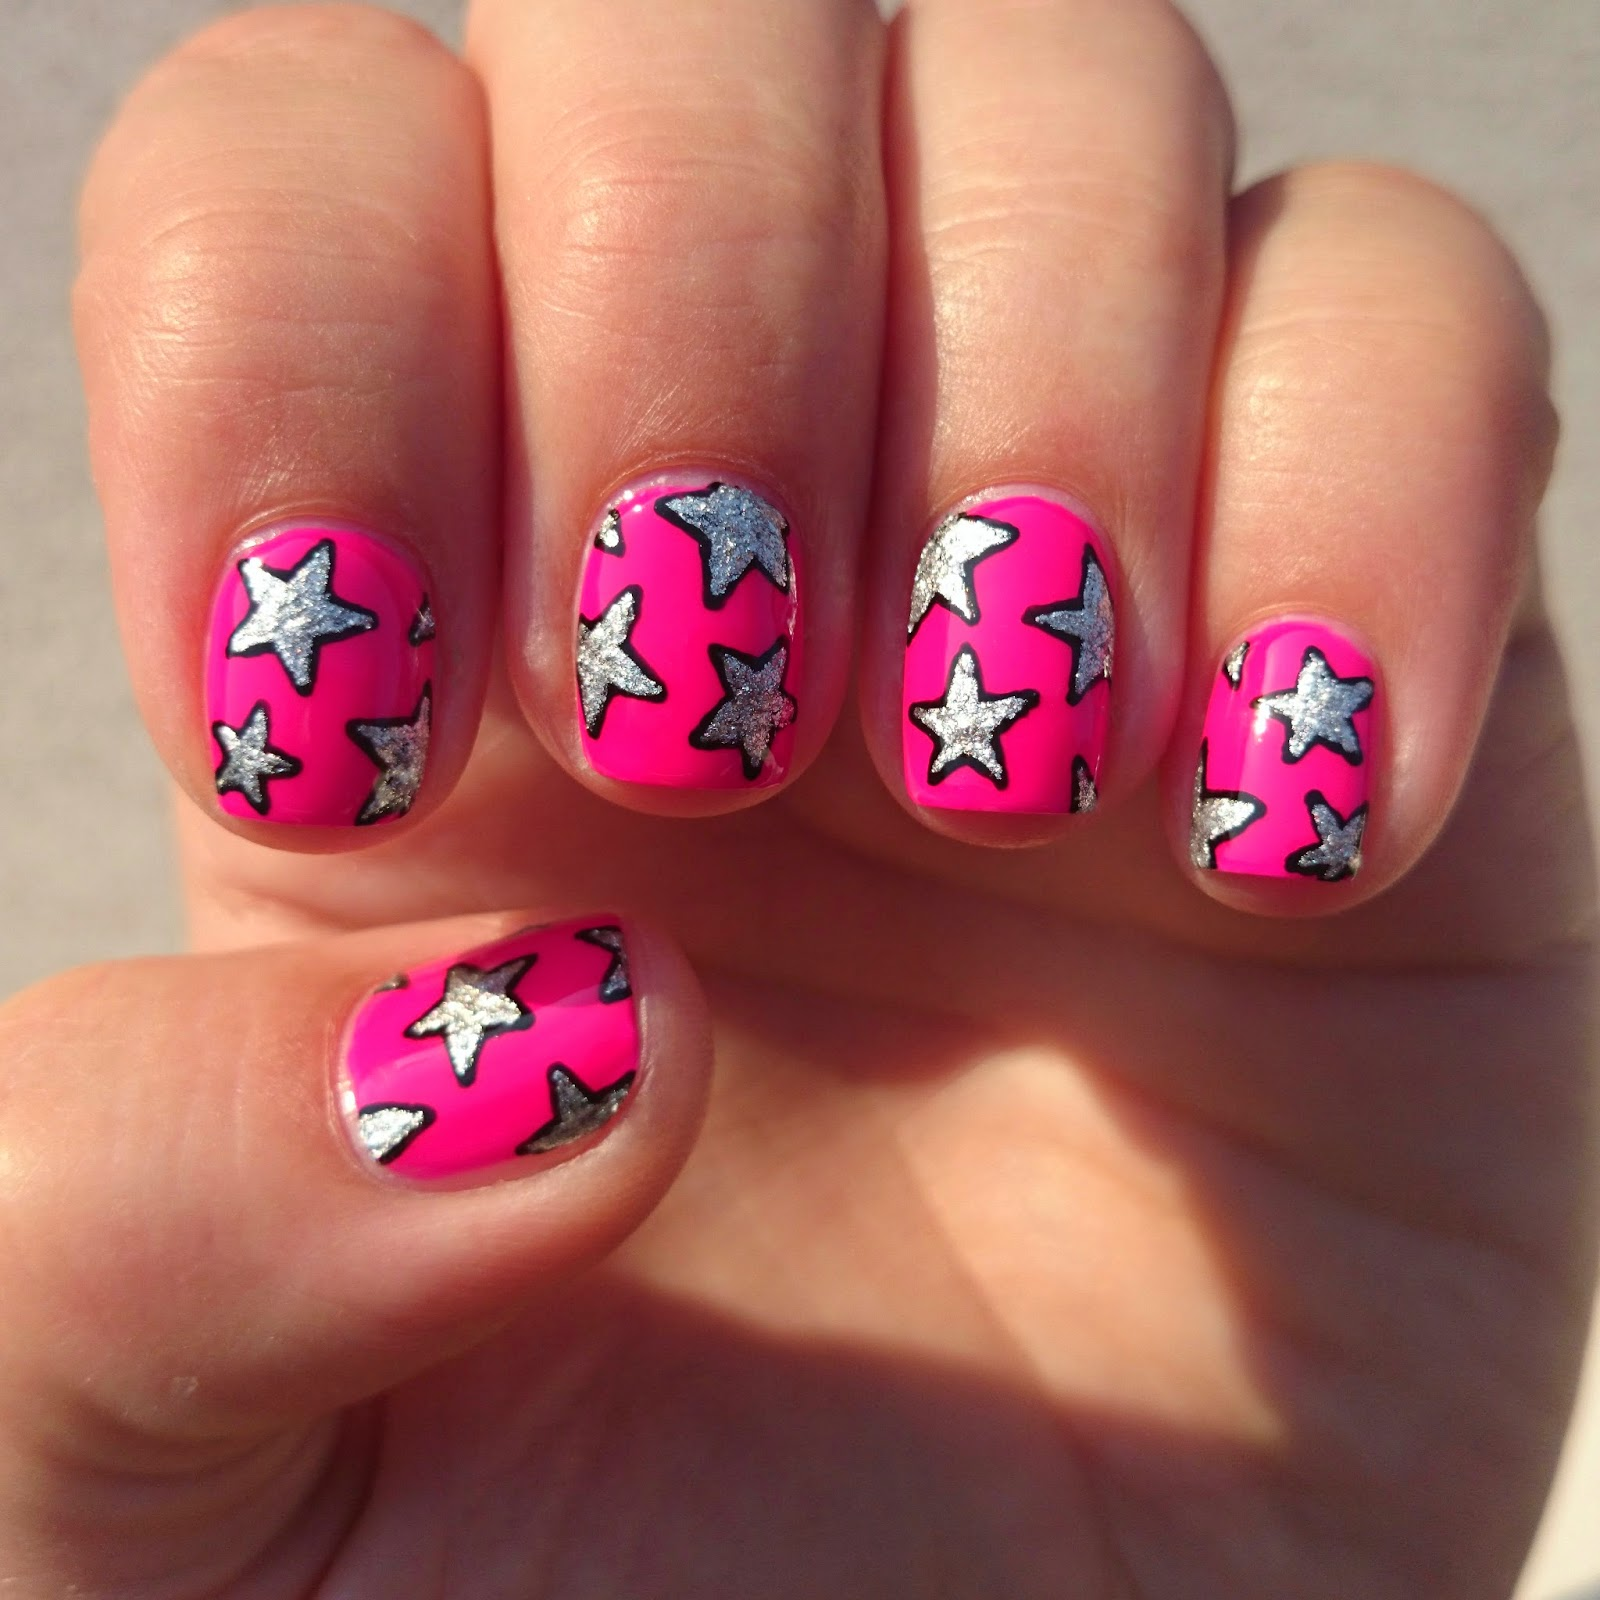 Dahlia nails playboy stars with a nail art pen and then filled them in with in the 90s i love this design and might try it again with some pastels or other slightly more subtle prinsesfo Image collections